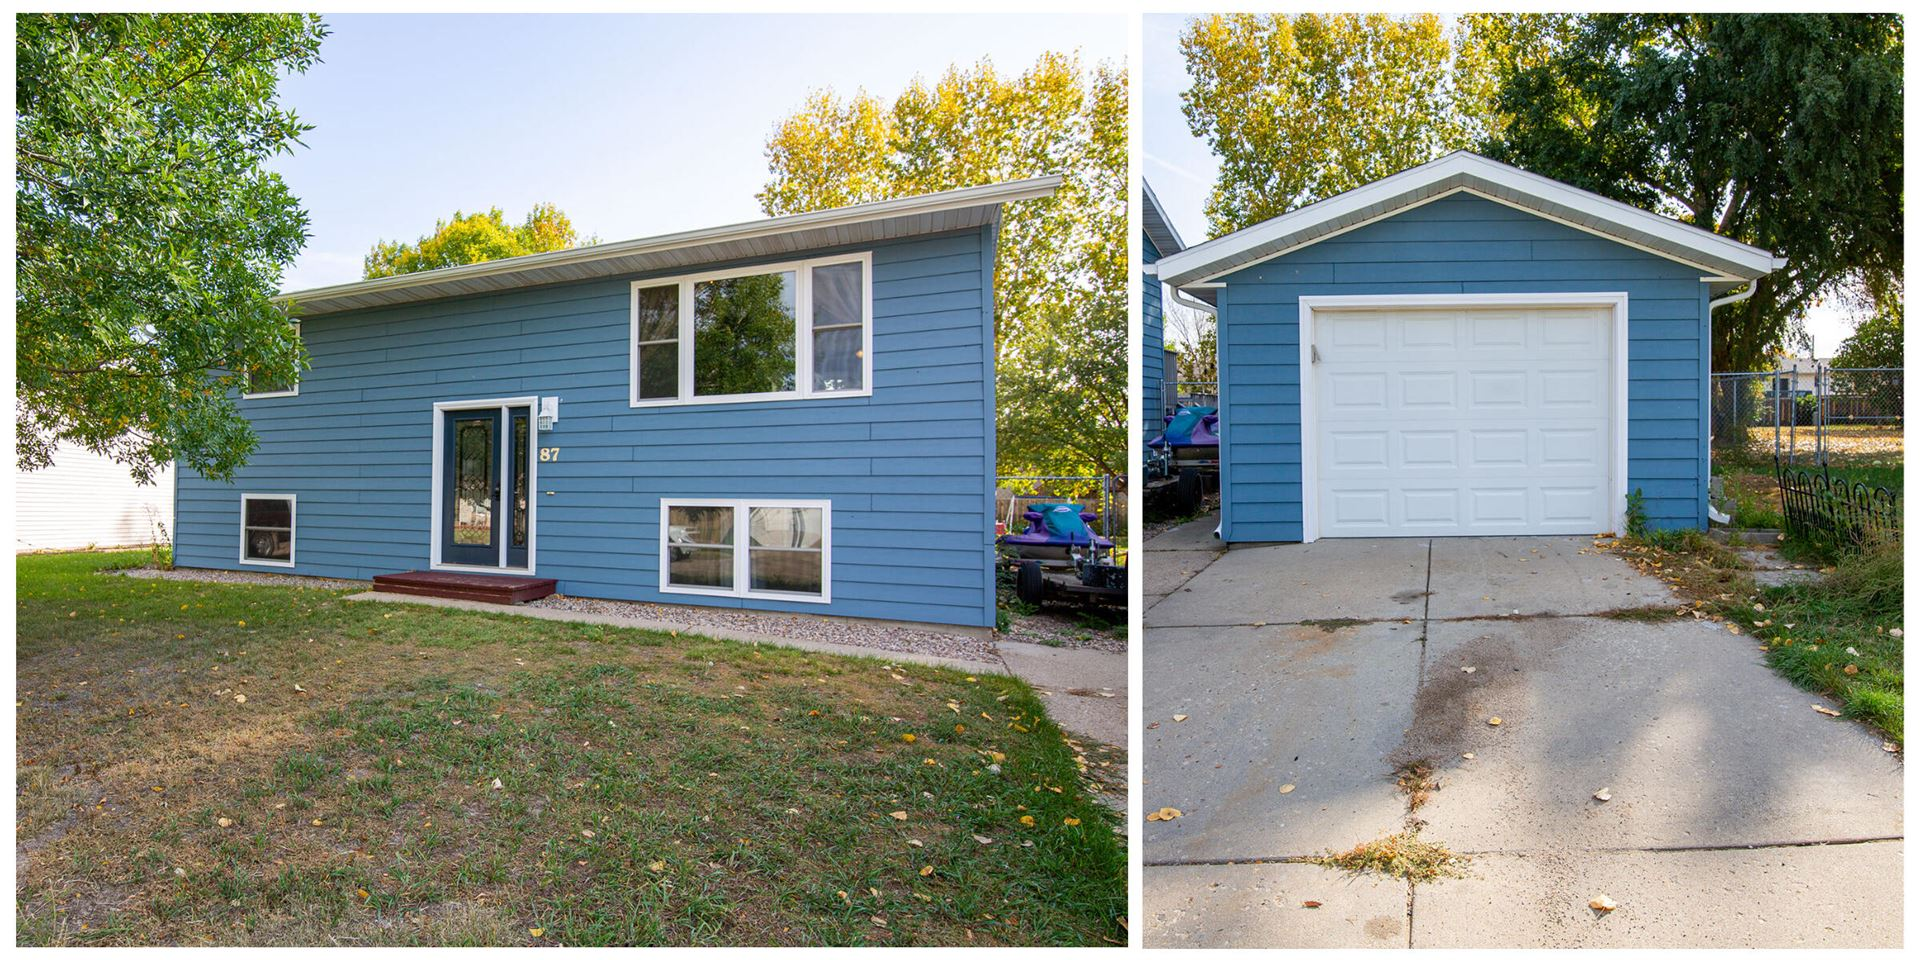 87 Mcdougall Drive, Lincoln, ND 58504 - #: 412392